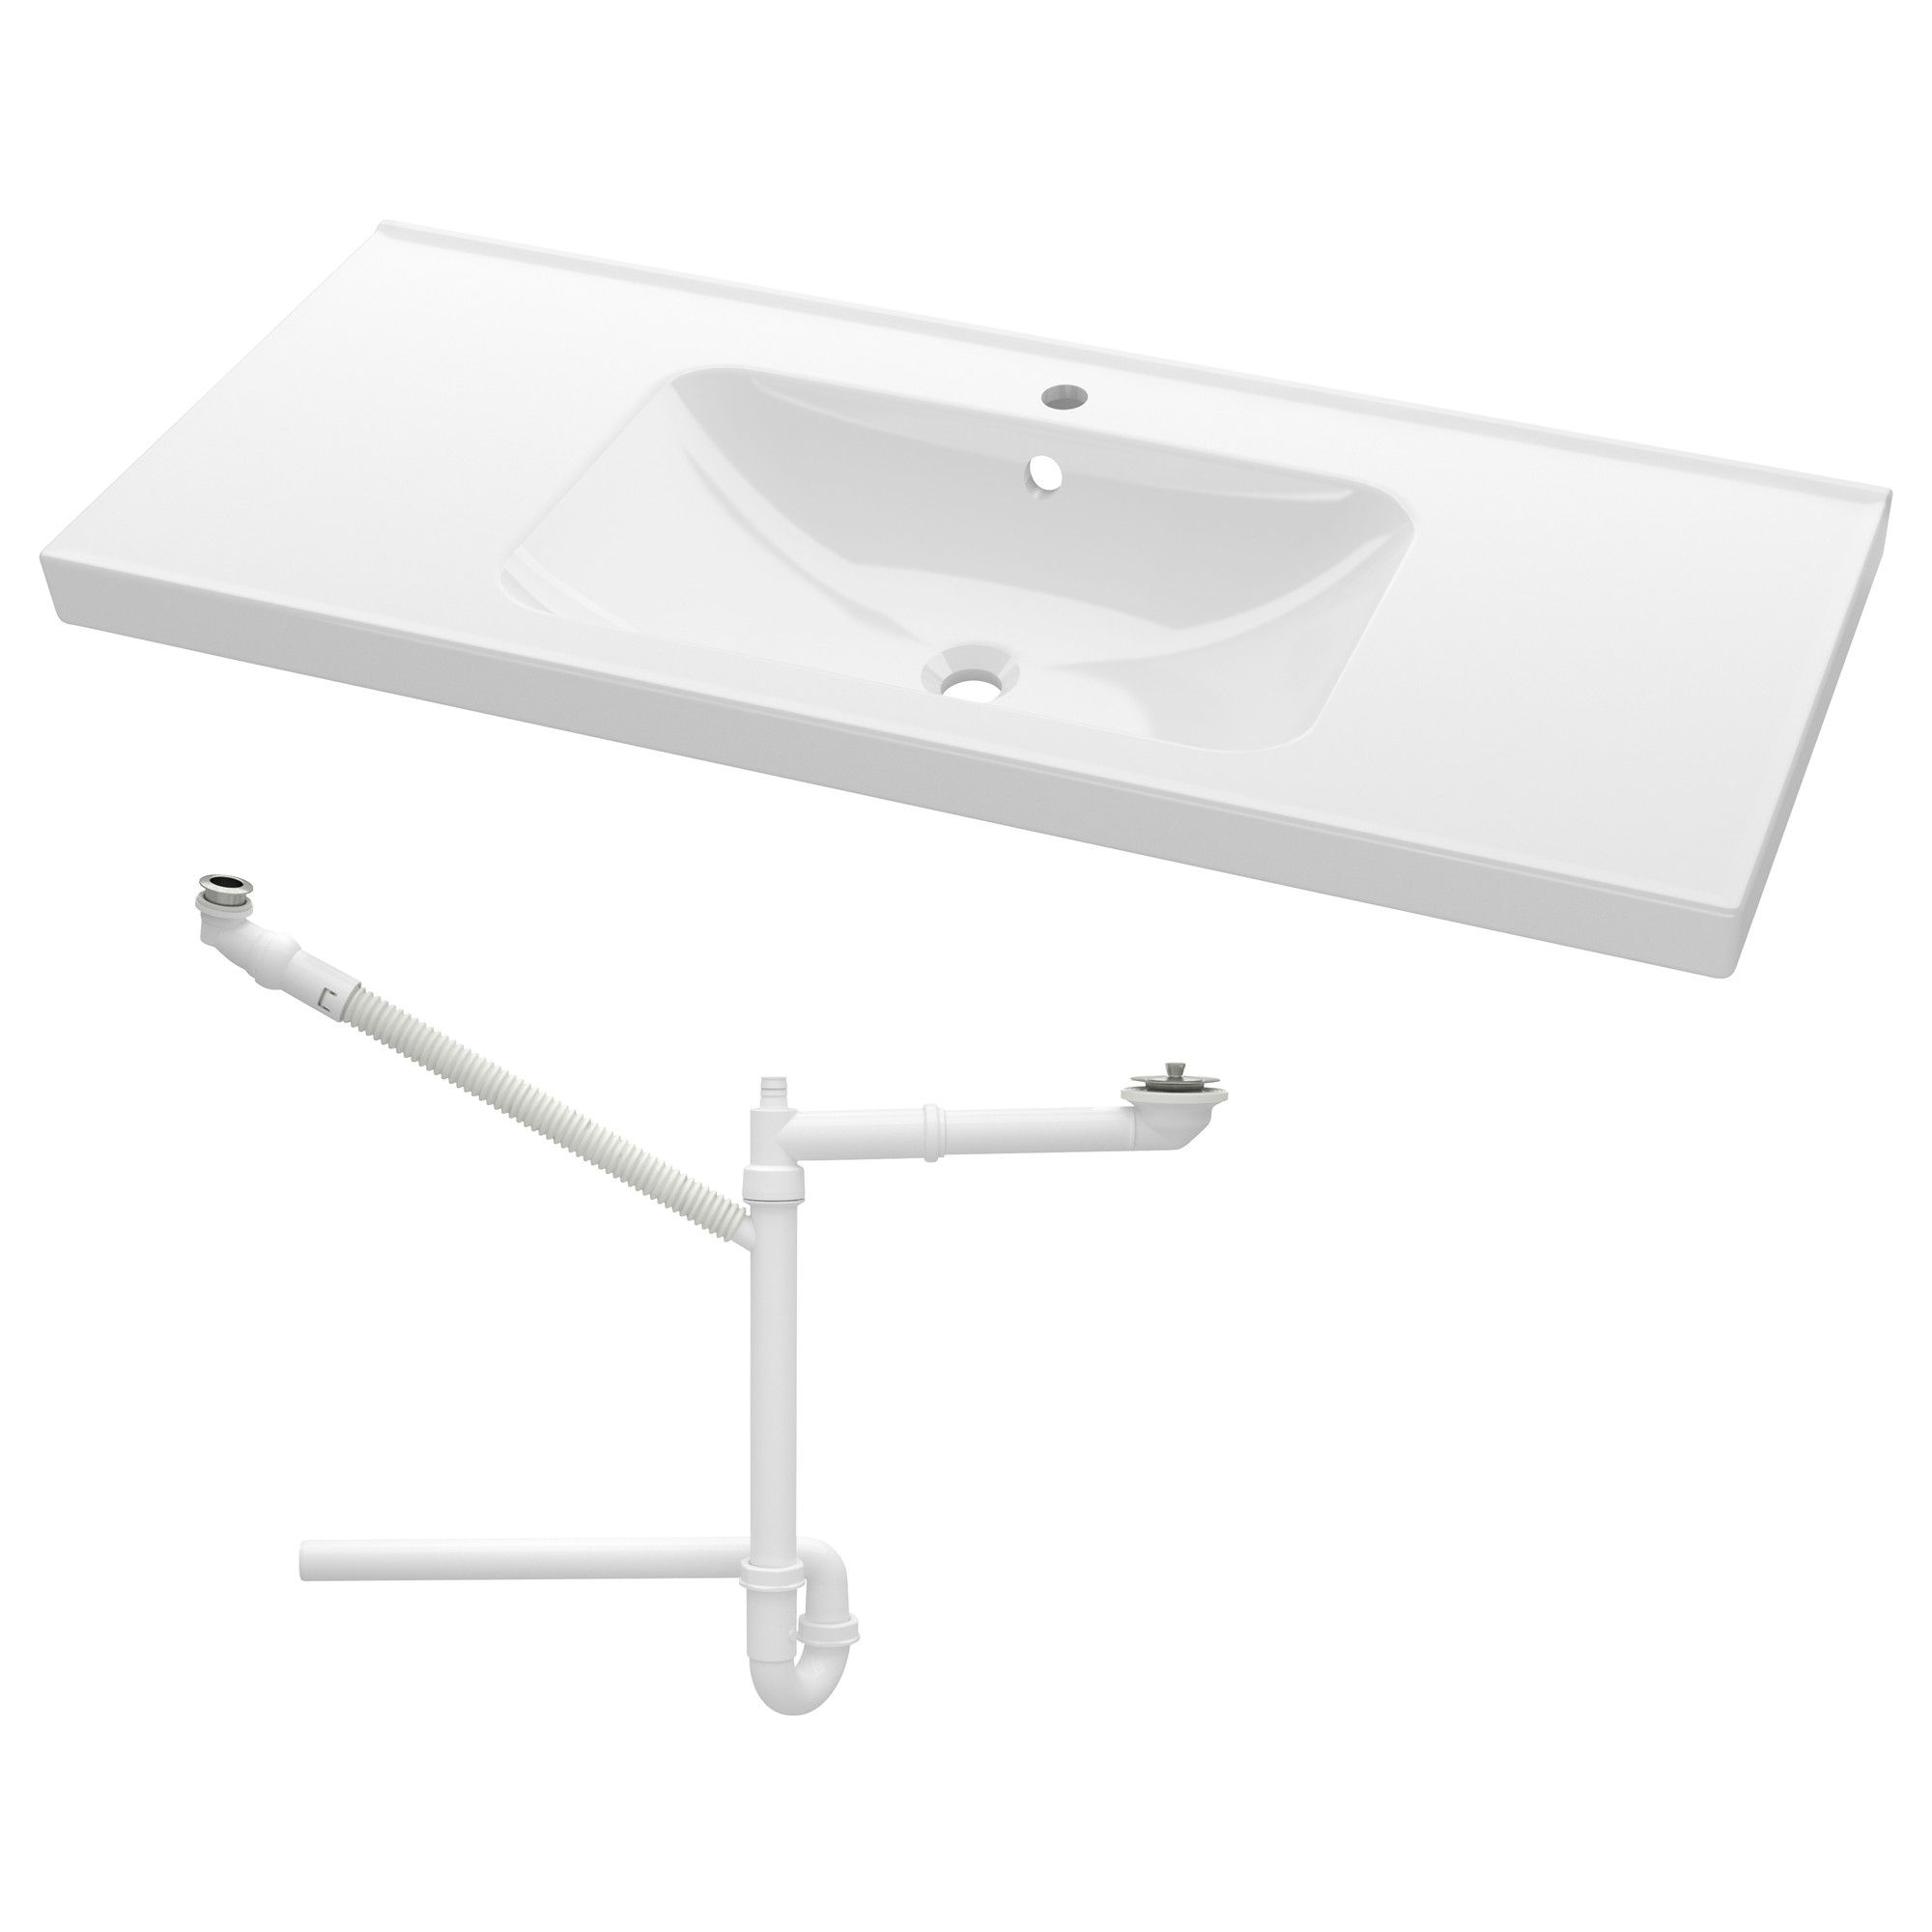 ikea odensvik lavabo simple bathroom ideas ikea sink. Black Bedroom Furniture Sets. Home Design Ideas